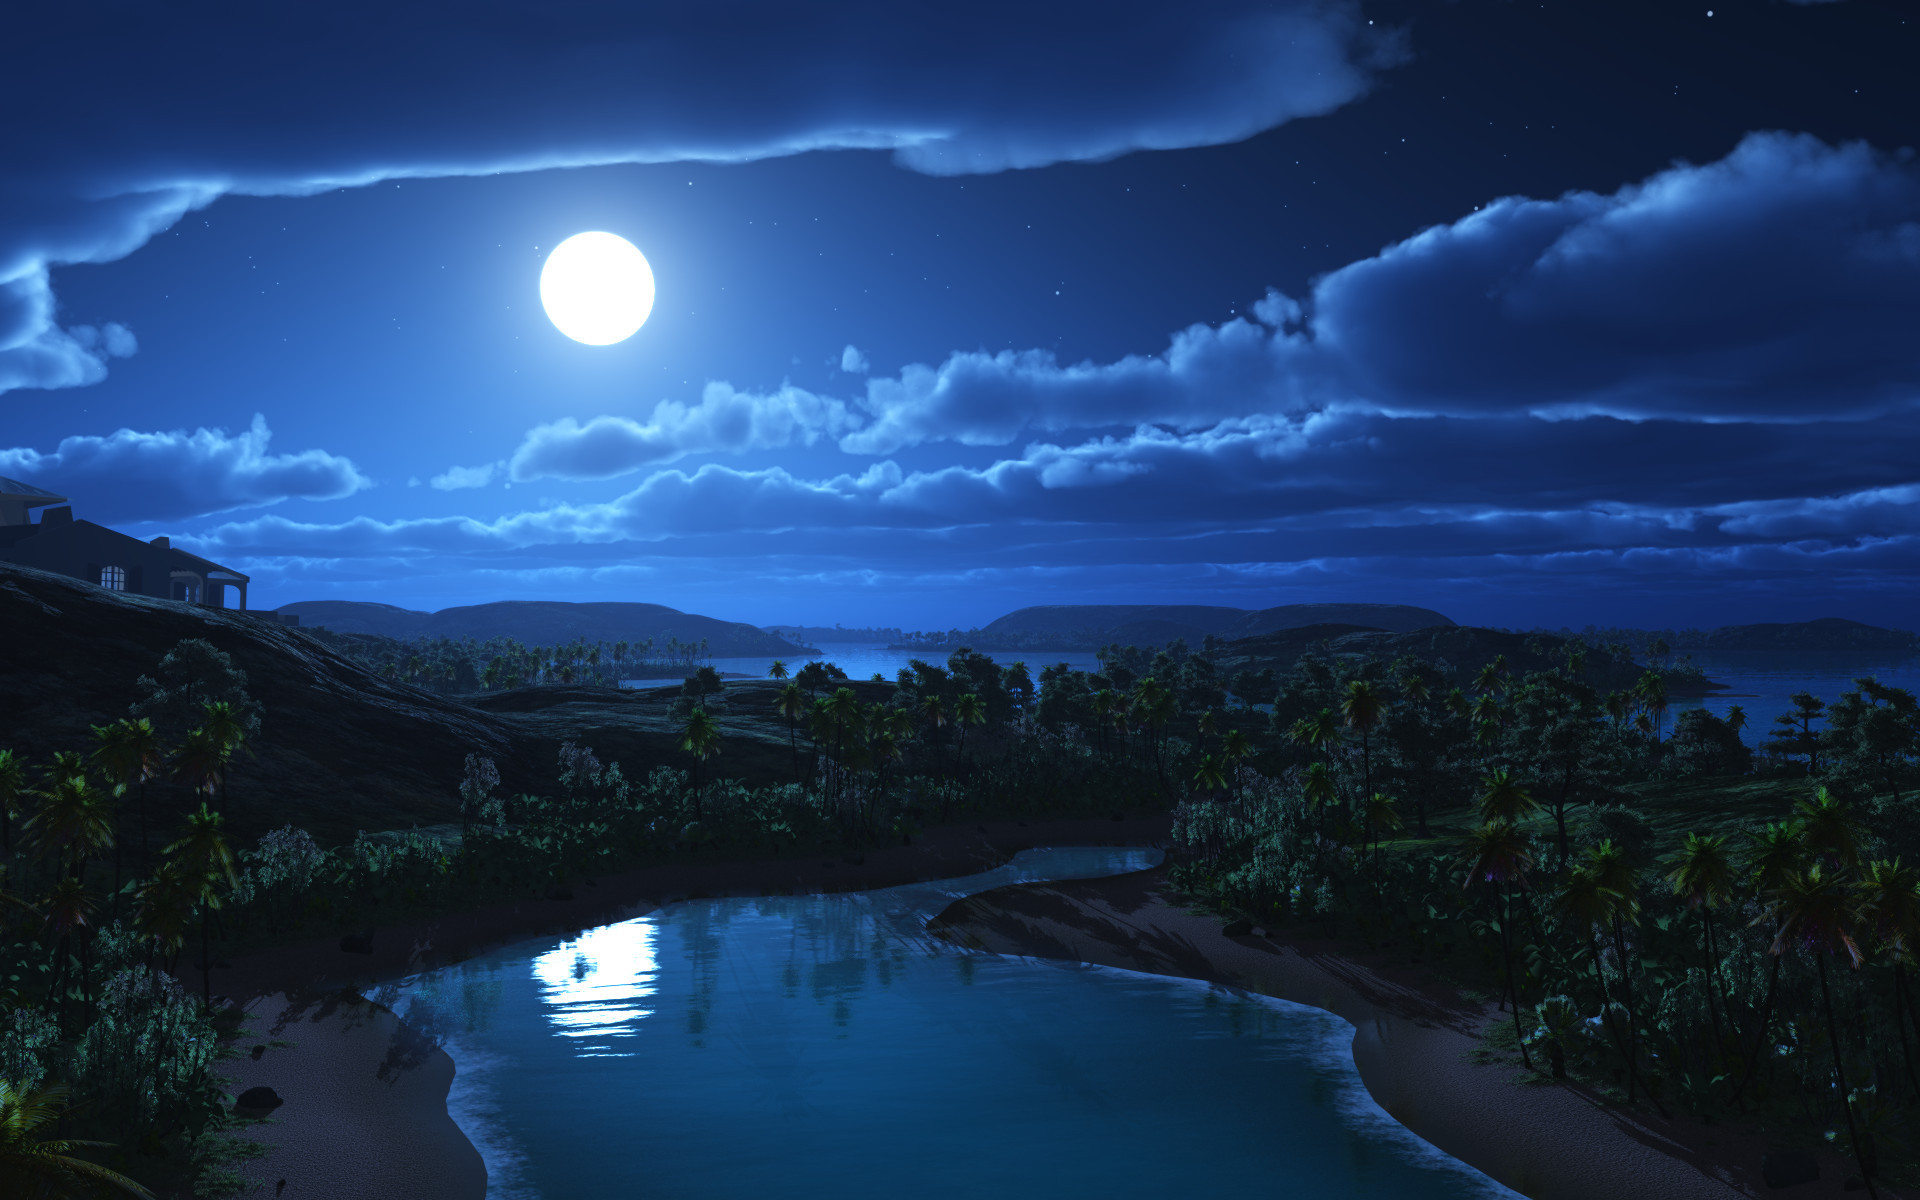 landscape wallpaper moon